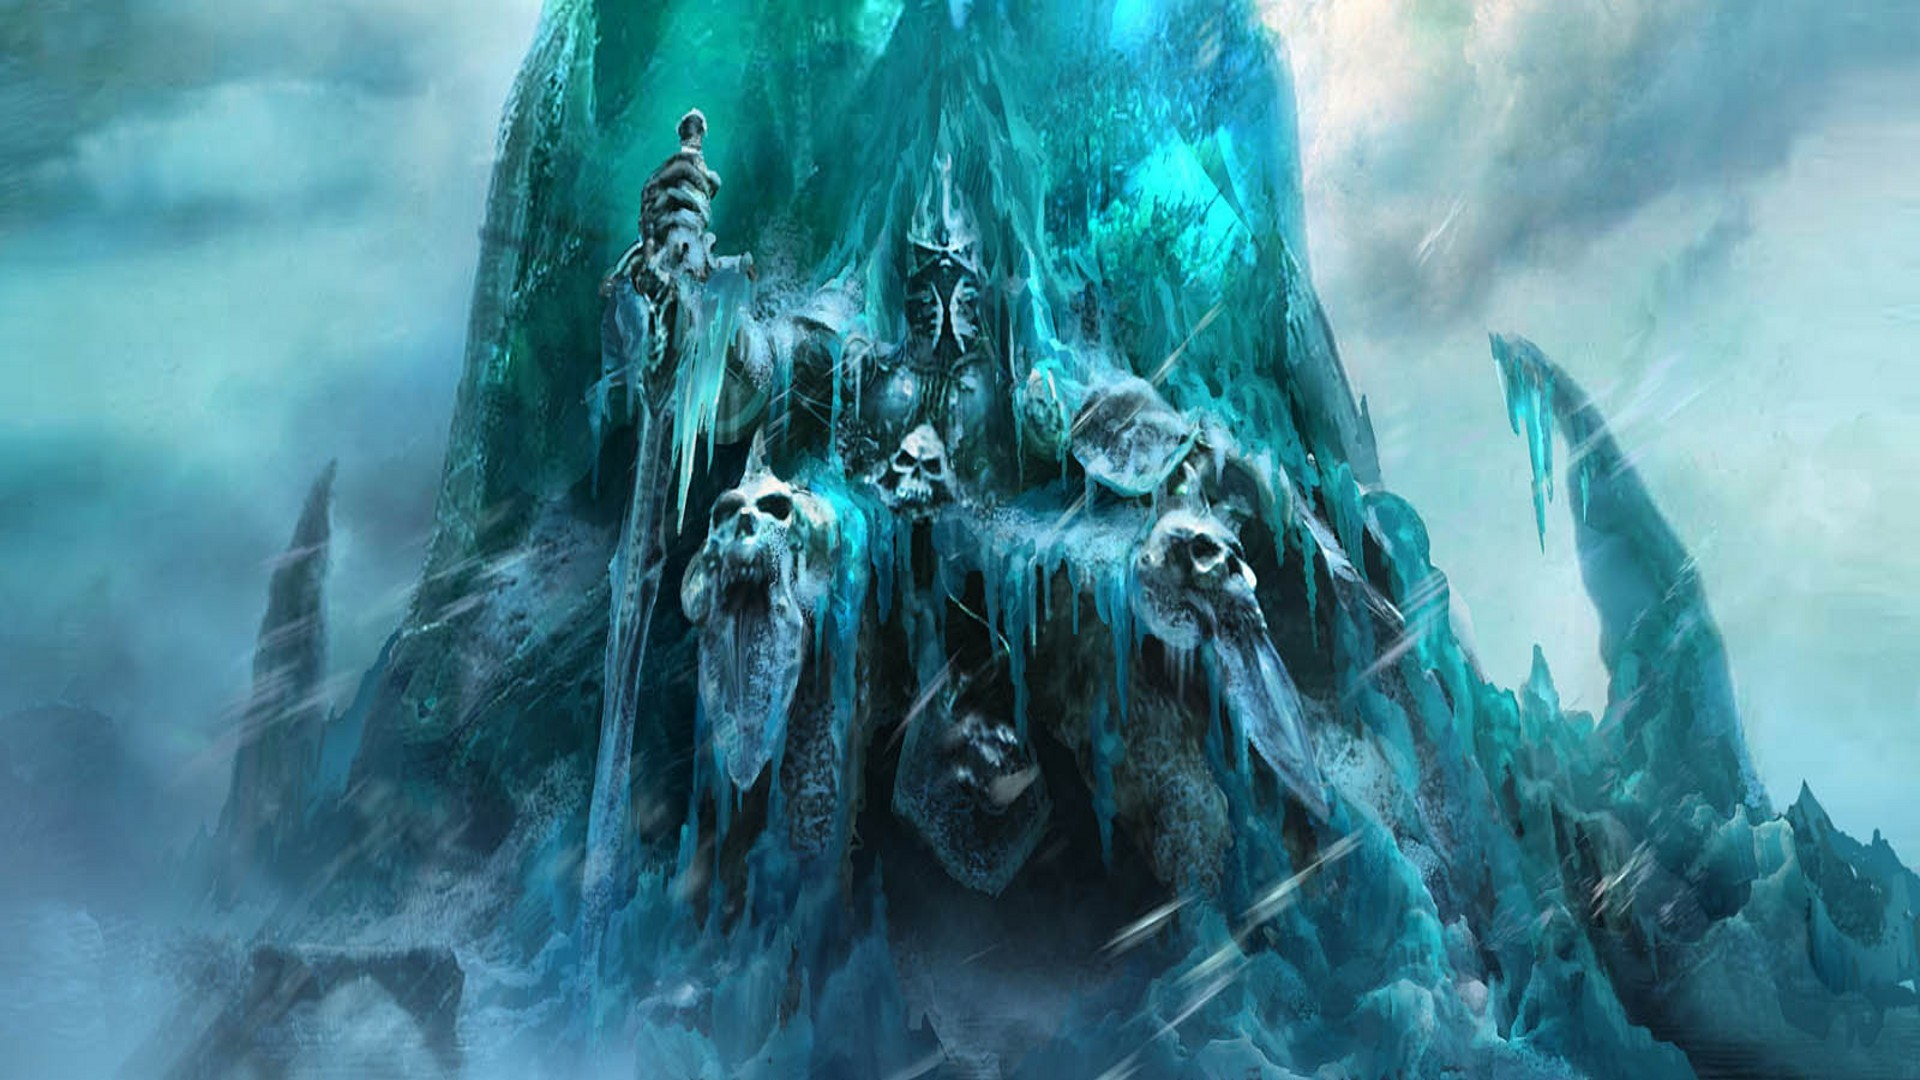 The lich king wallpaper wallpapertag - King wallpaper ...